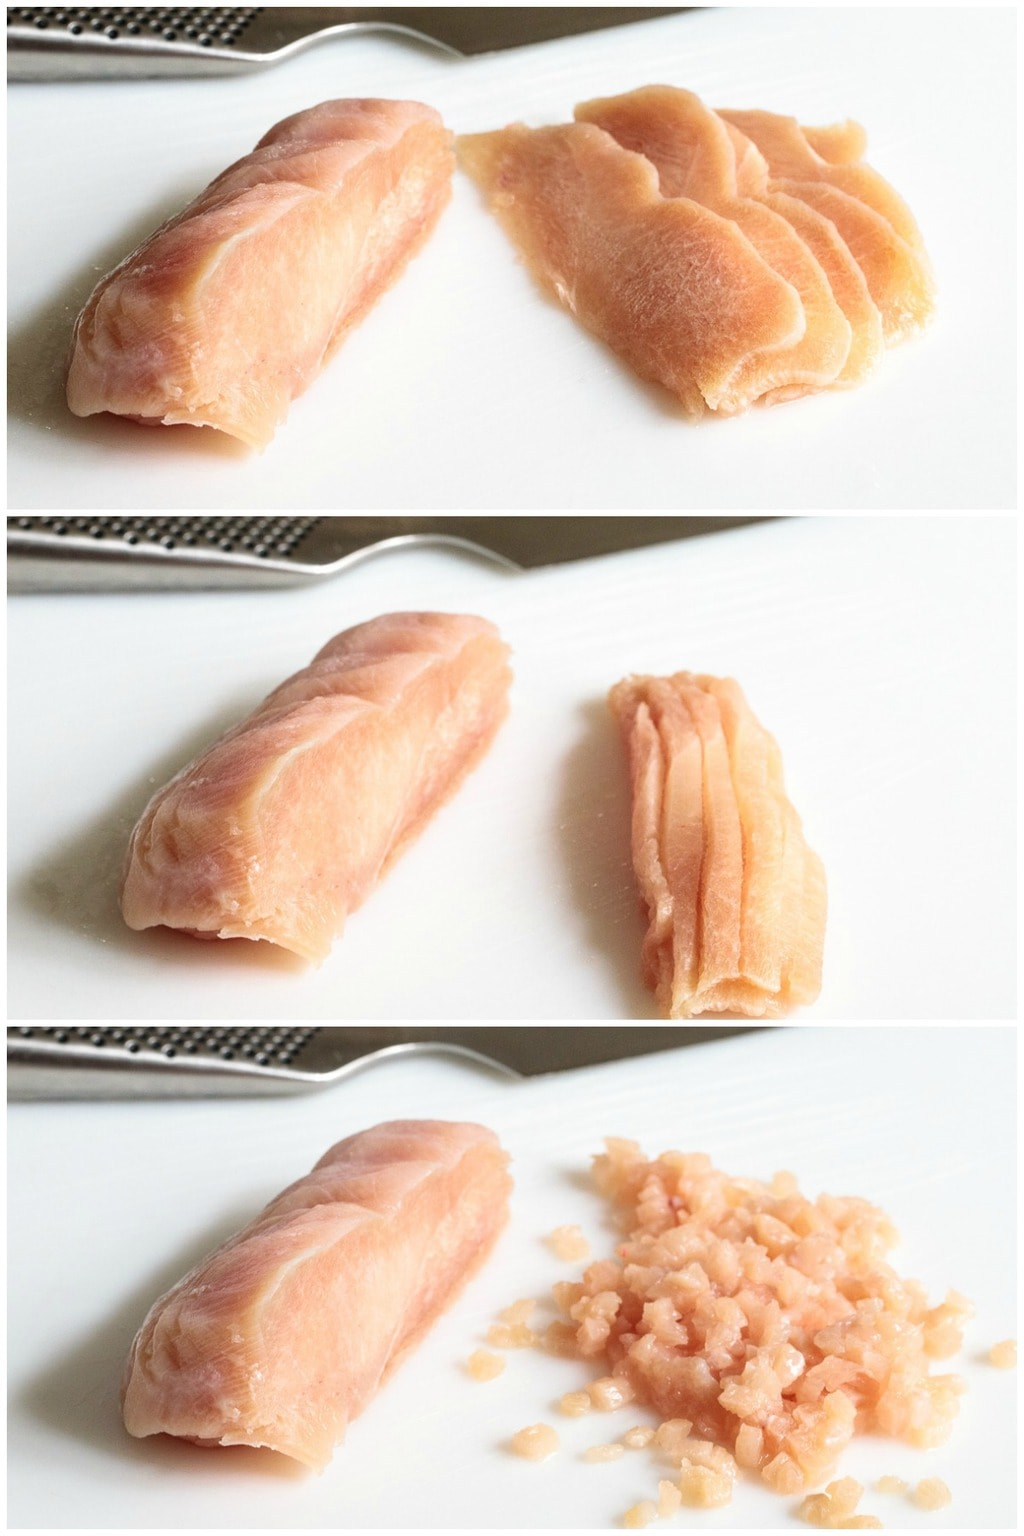 Collage of photos demonstrating how to cut chicken in preparation for making Italian Chicken Meatballs and Marinara.